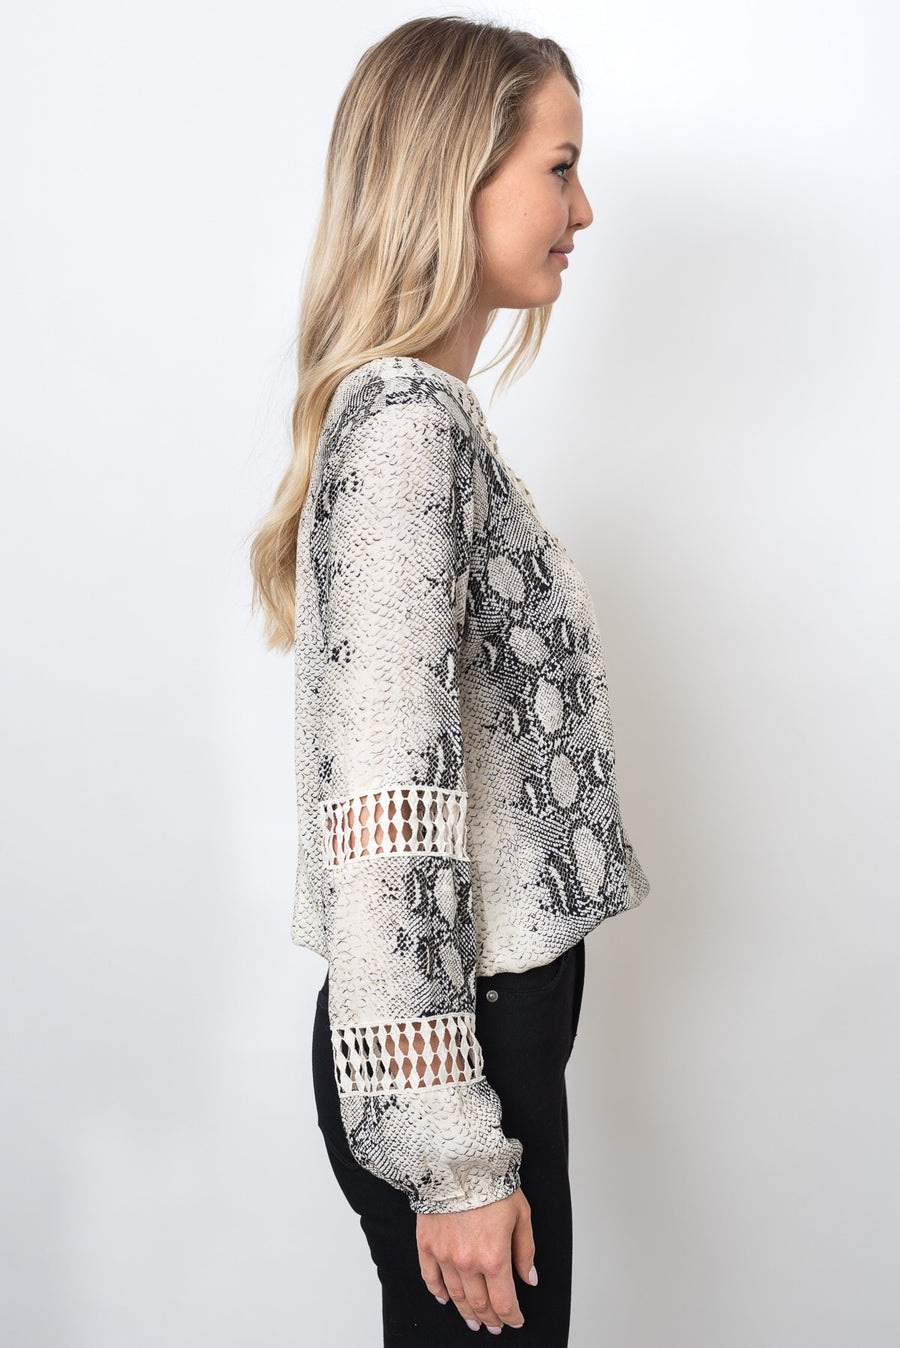 LUCIA TOP - SNAKE PRINT